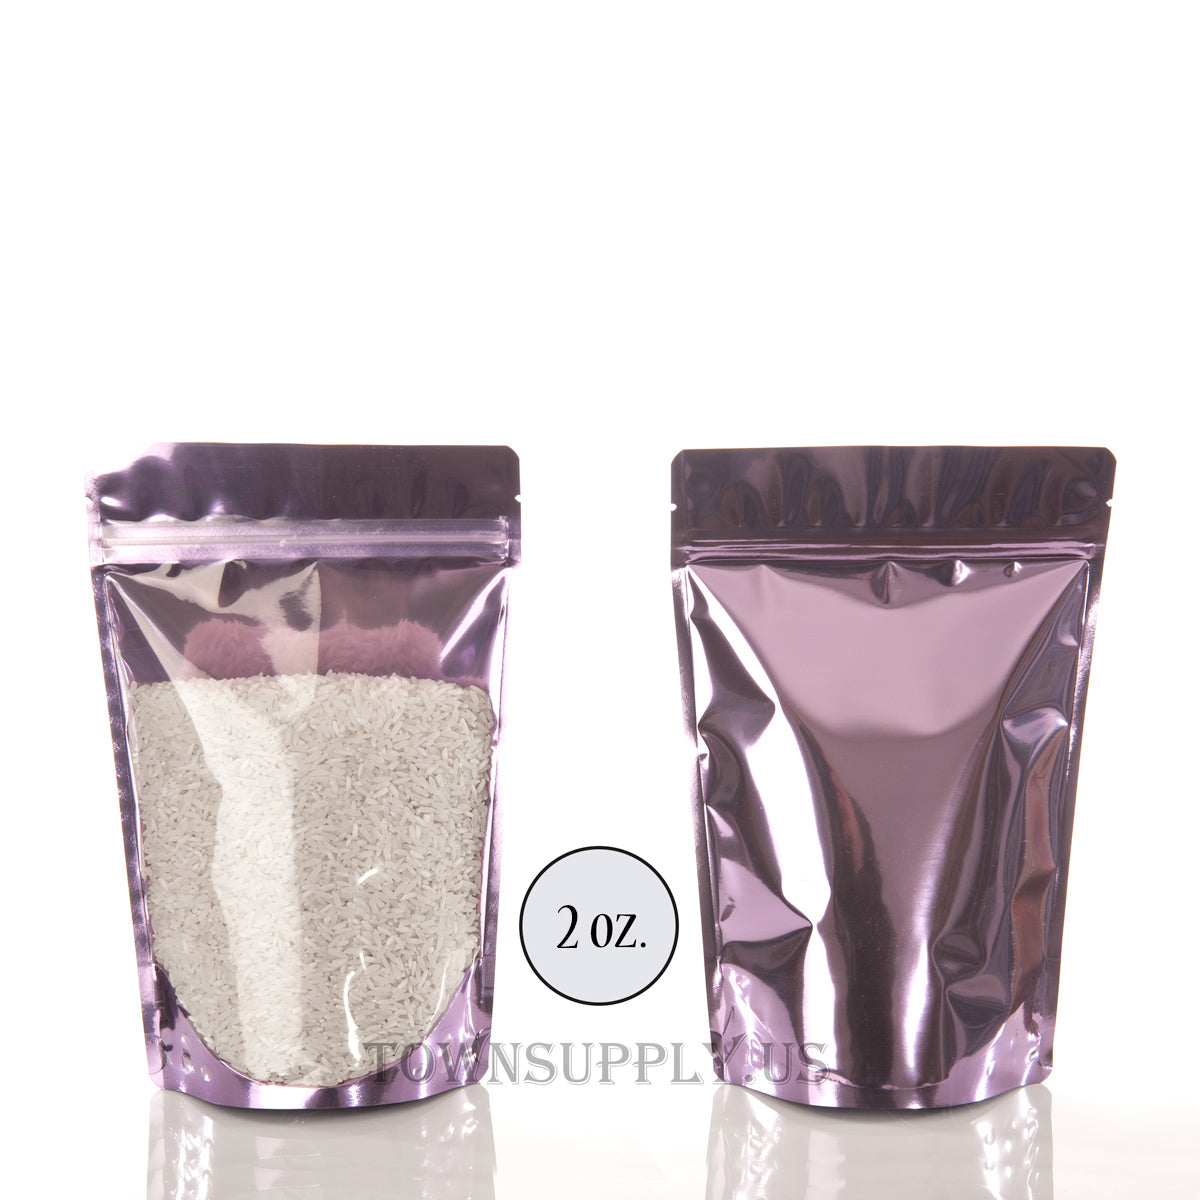 lavender foil stand up pouch with clear poly front, 2 oz. bags - Town Supply